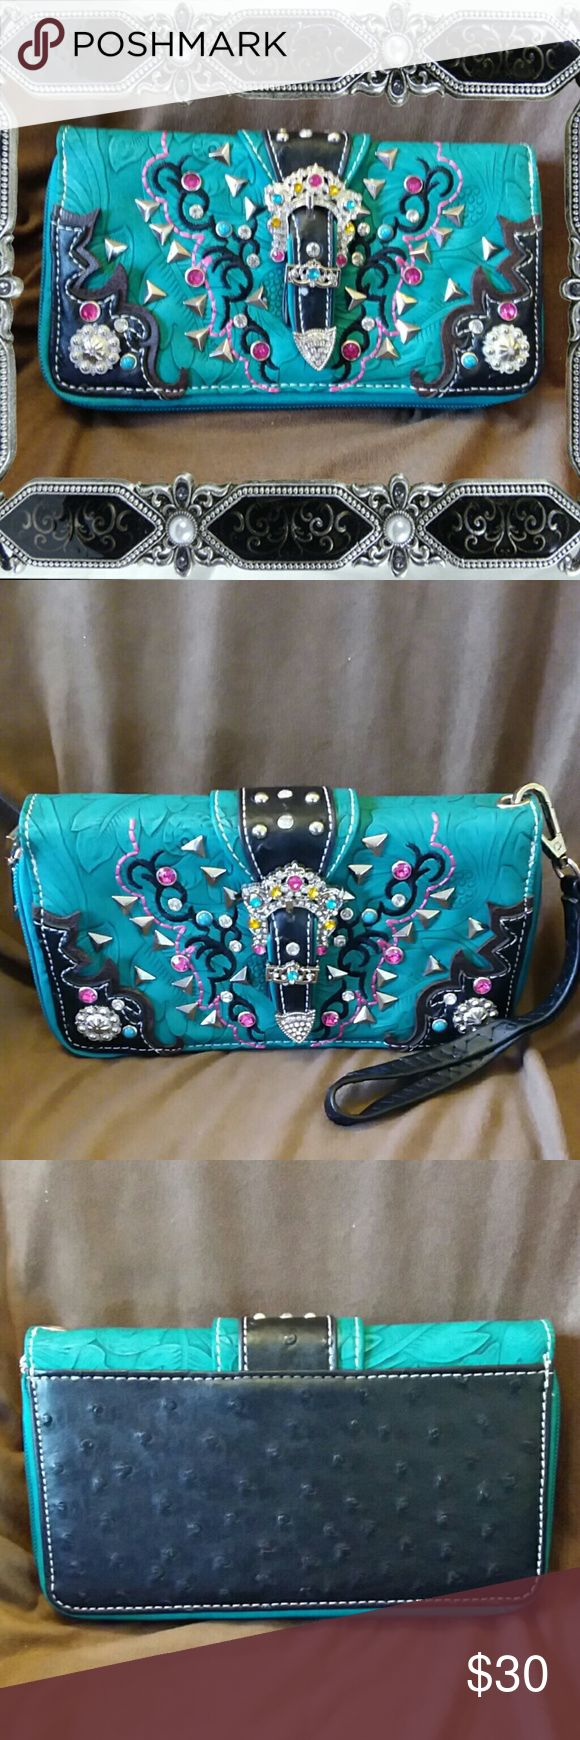 "Cowgirl trendy western wristlet zip wallet Cowgirl trendy western wristlet zip wallet,  turquoise.  High quality patterned leather exterior.  Fully lined fabric interior.  Floral motif with jeweled buckle,  conchos,  and faux gemstone studs. Detachable wrist strap.  Zipper around closure.  2 zip close interior compartments.  Dimension 7.5""L x 4.5""H x 1""W.  NWOT Bags Wallets"